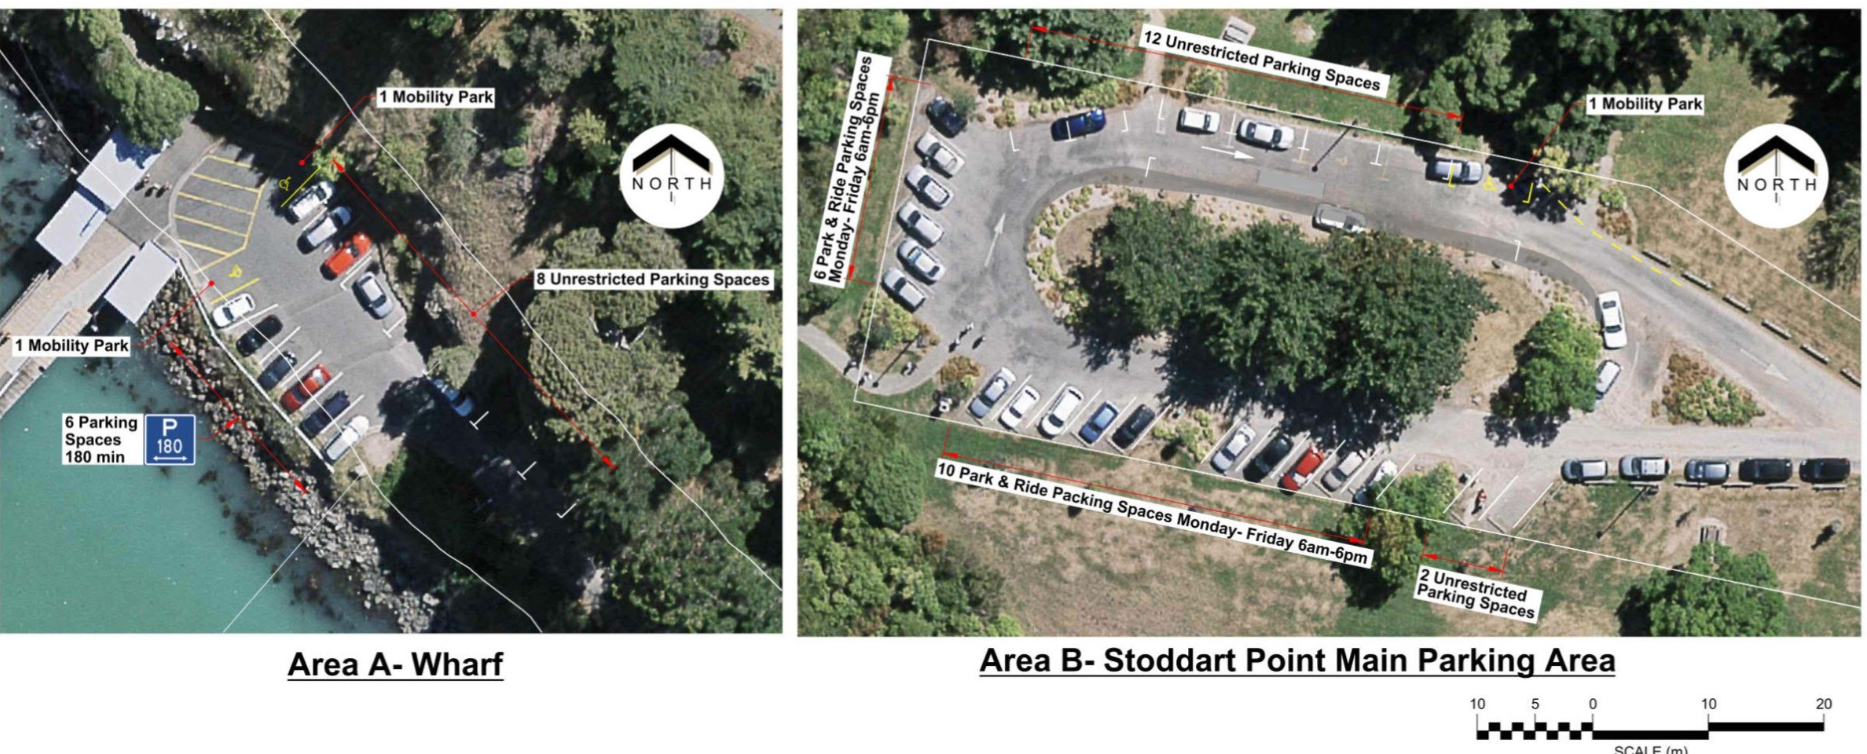 The proposed changes to the parking areas. Image: Christchurch City Council